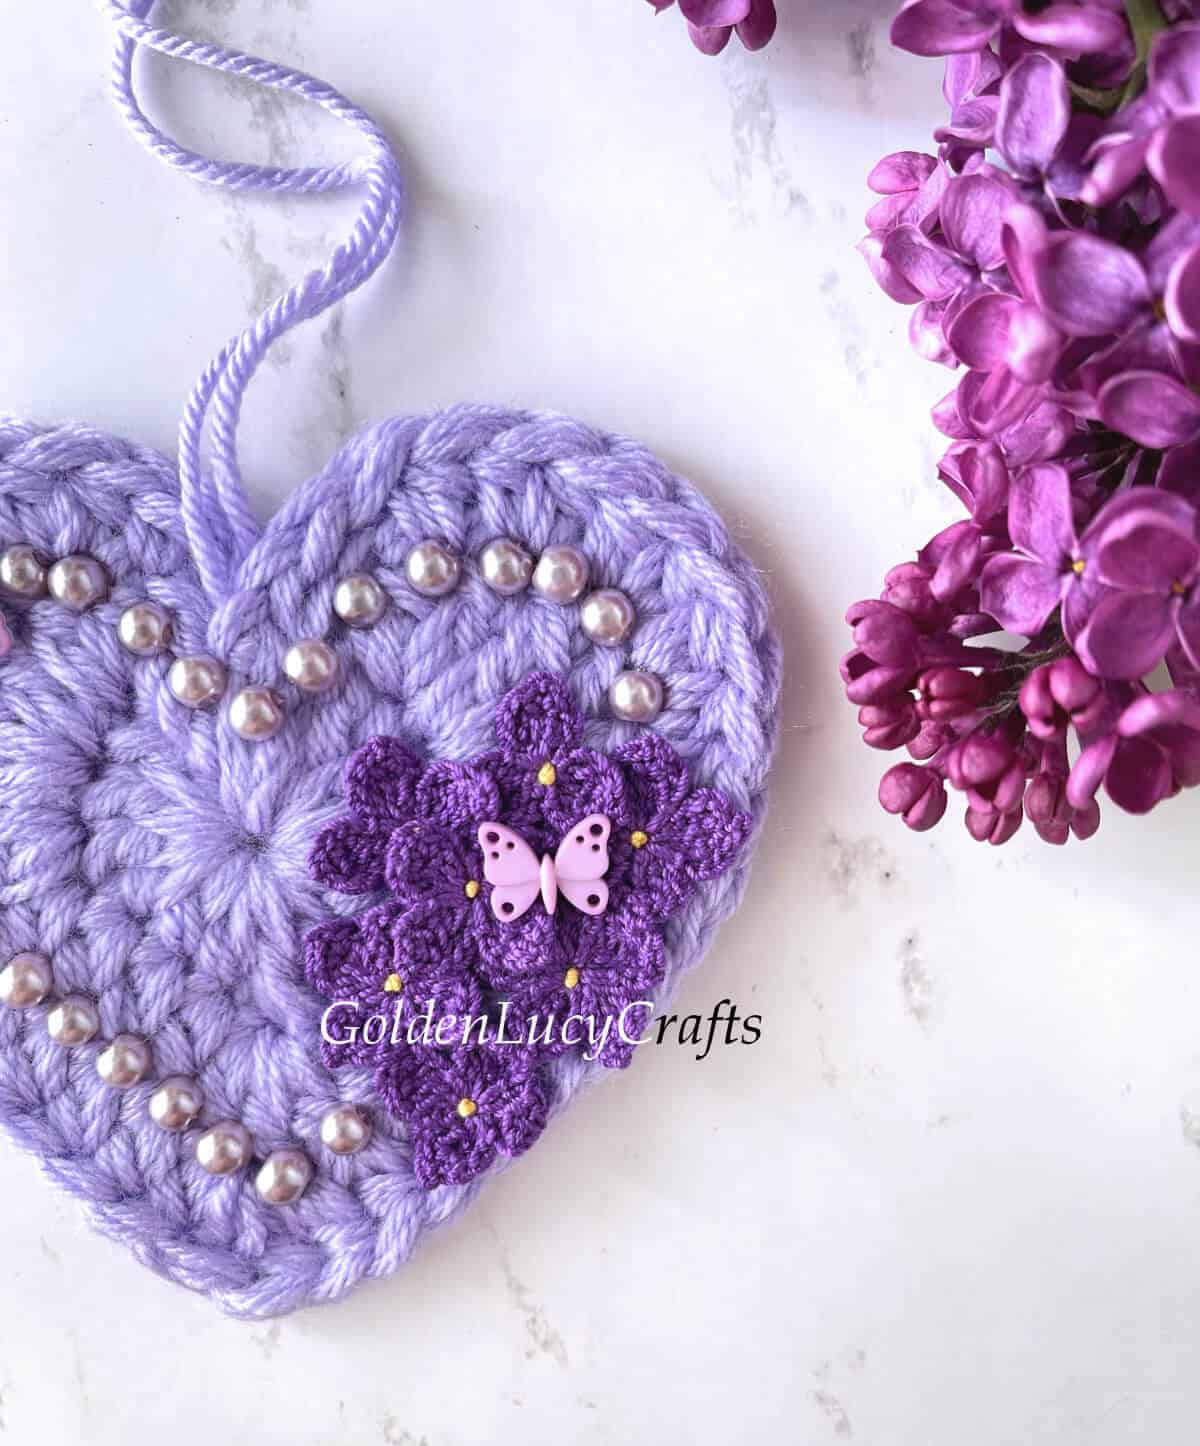 Crocheted heart embellished with crochet lilac flowers and beads close up picture.